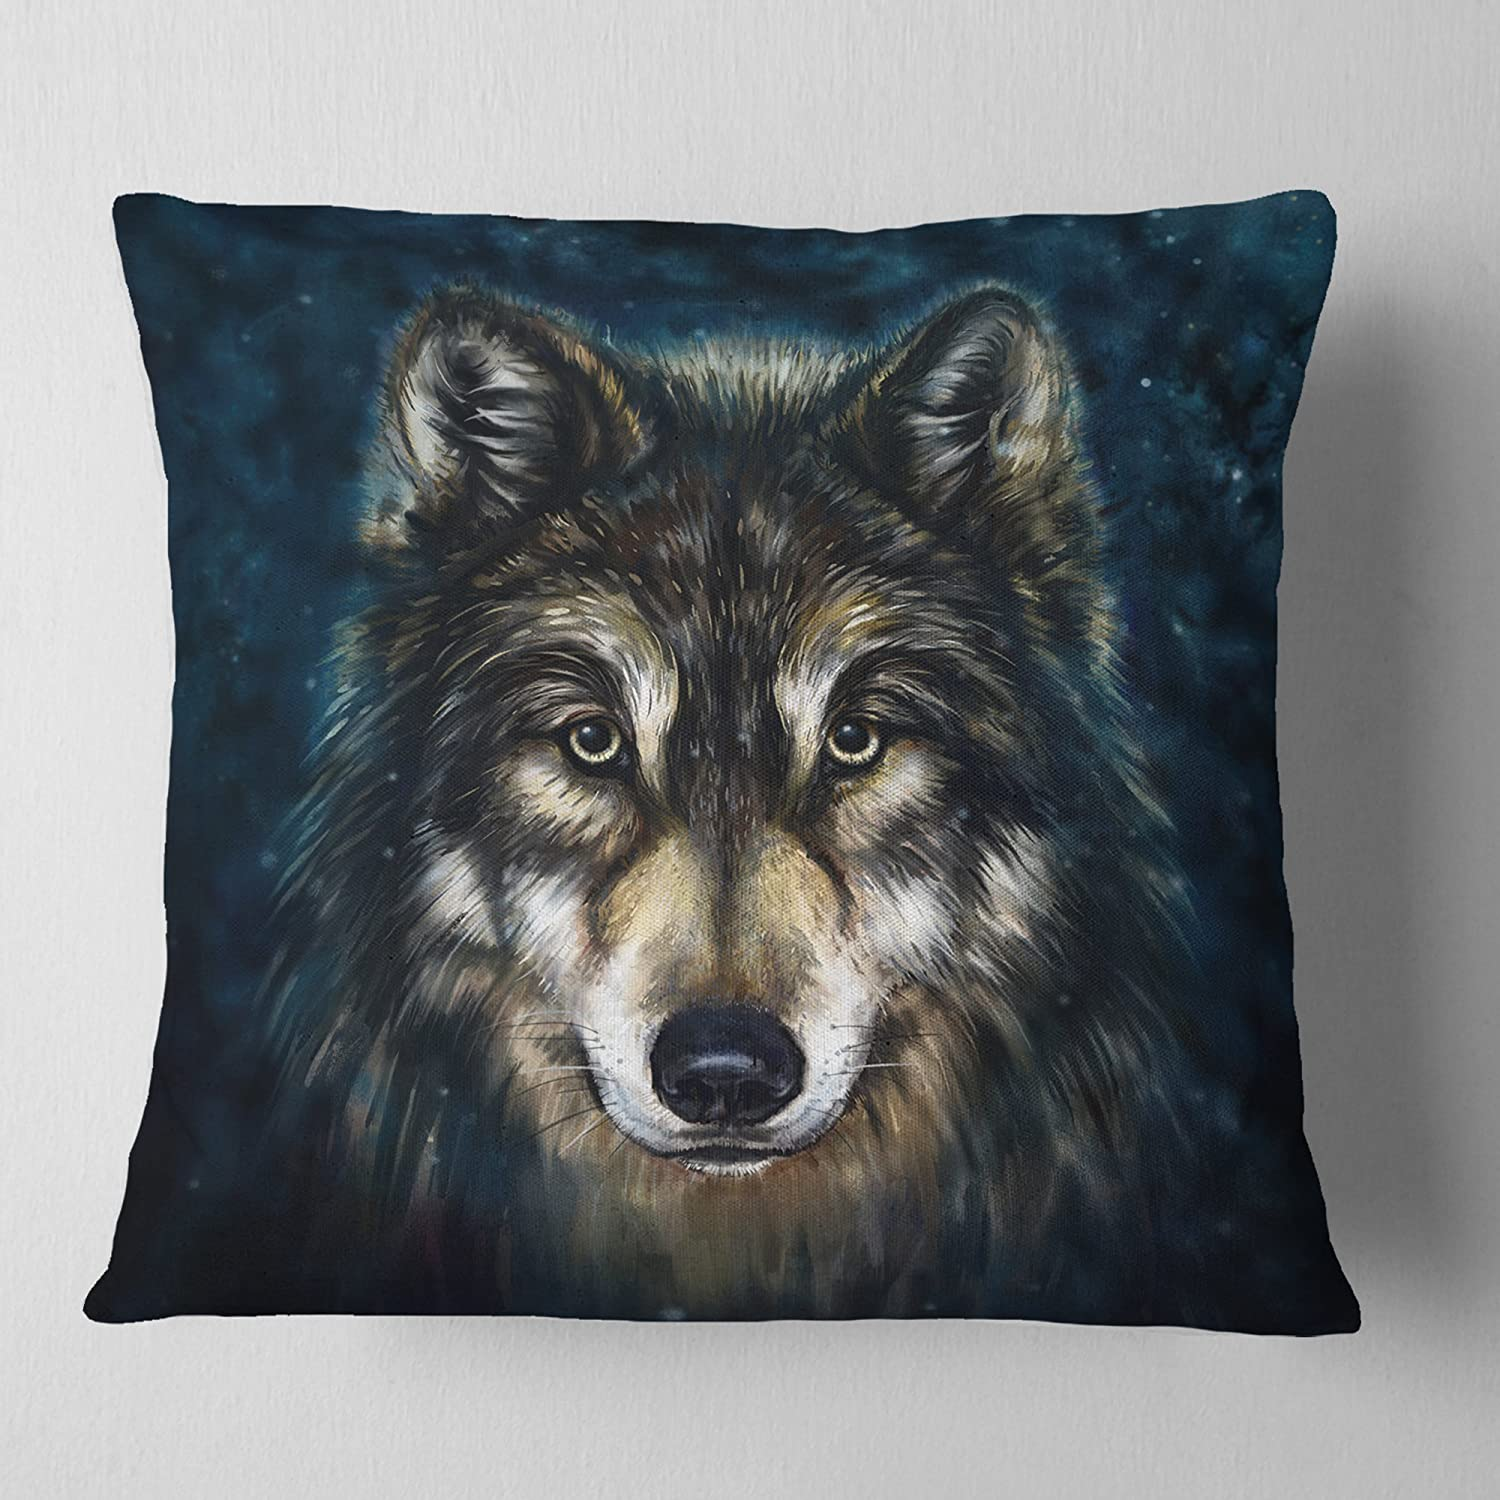 Throw Pillow Covers Designart Cu6212 18 18 Smiling Wolf Animal Throw Cushion Pillow Cover For Living Room Insert Printed On Both Side 18 In X 18 In In Sofa Home Kitchen